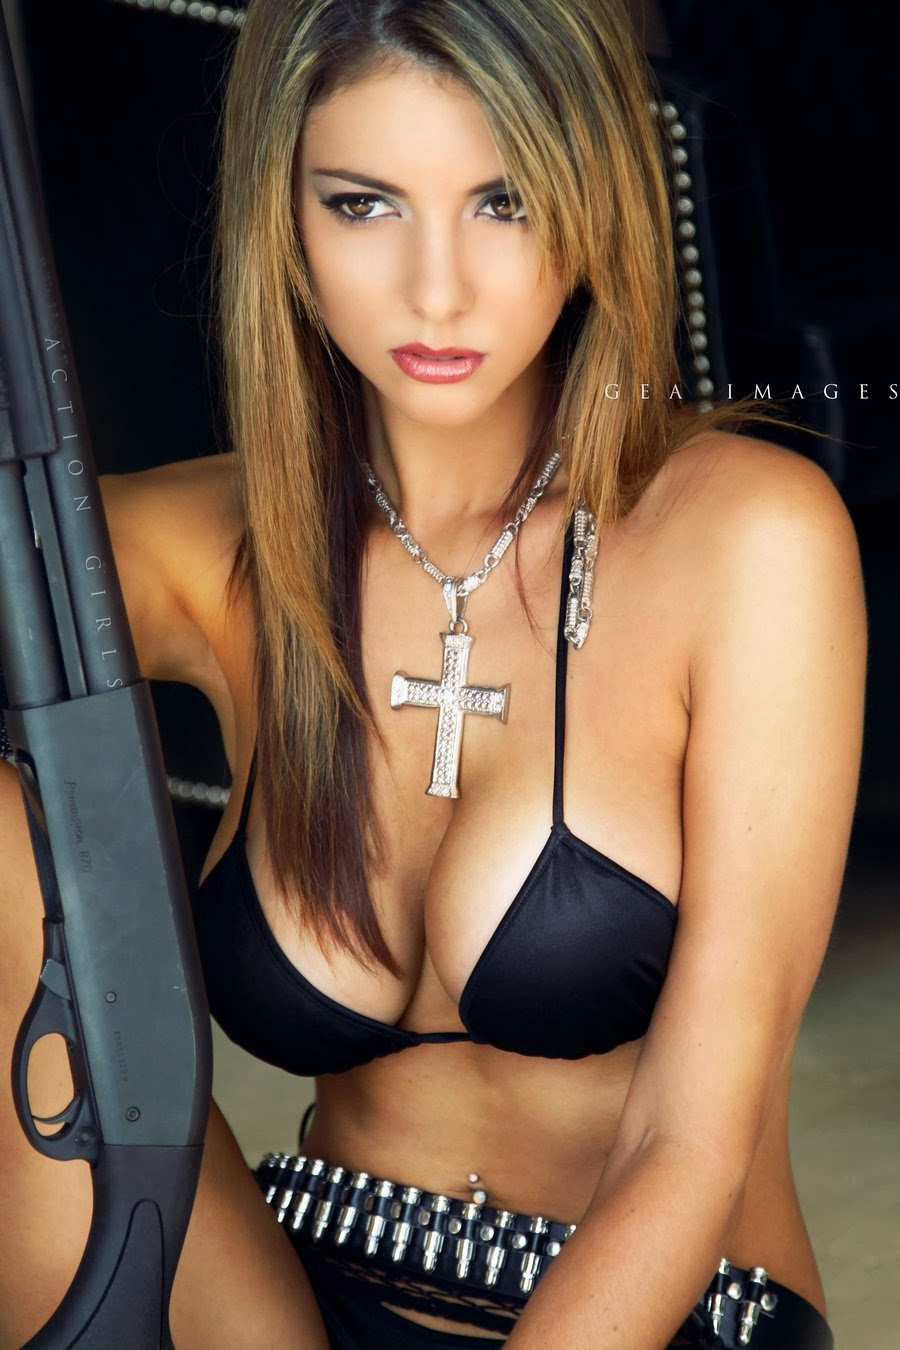 Monsters, guns and boobs